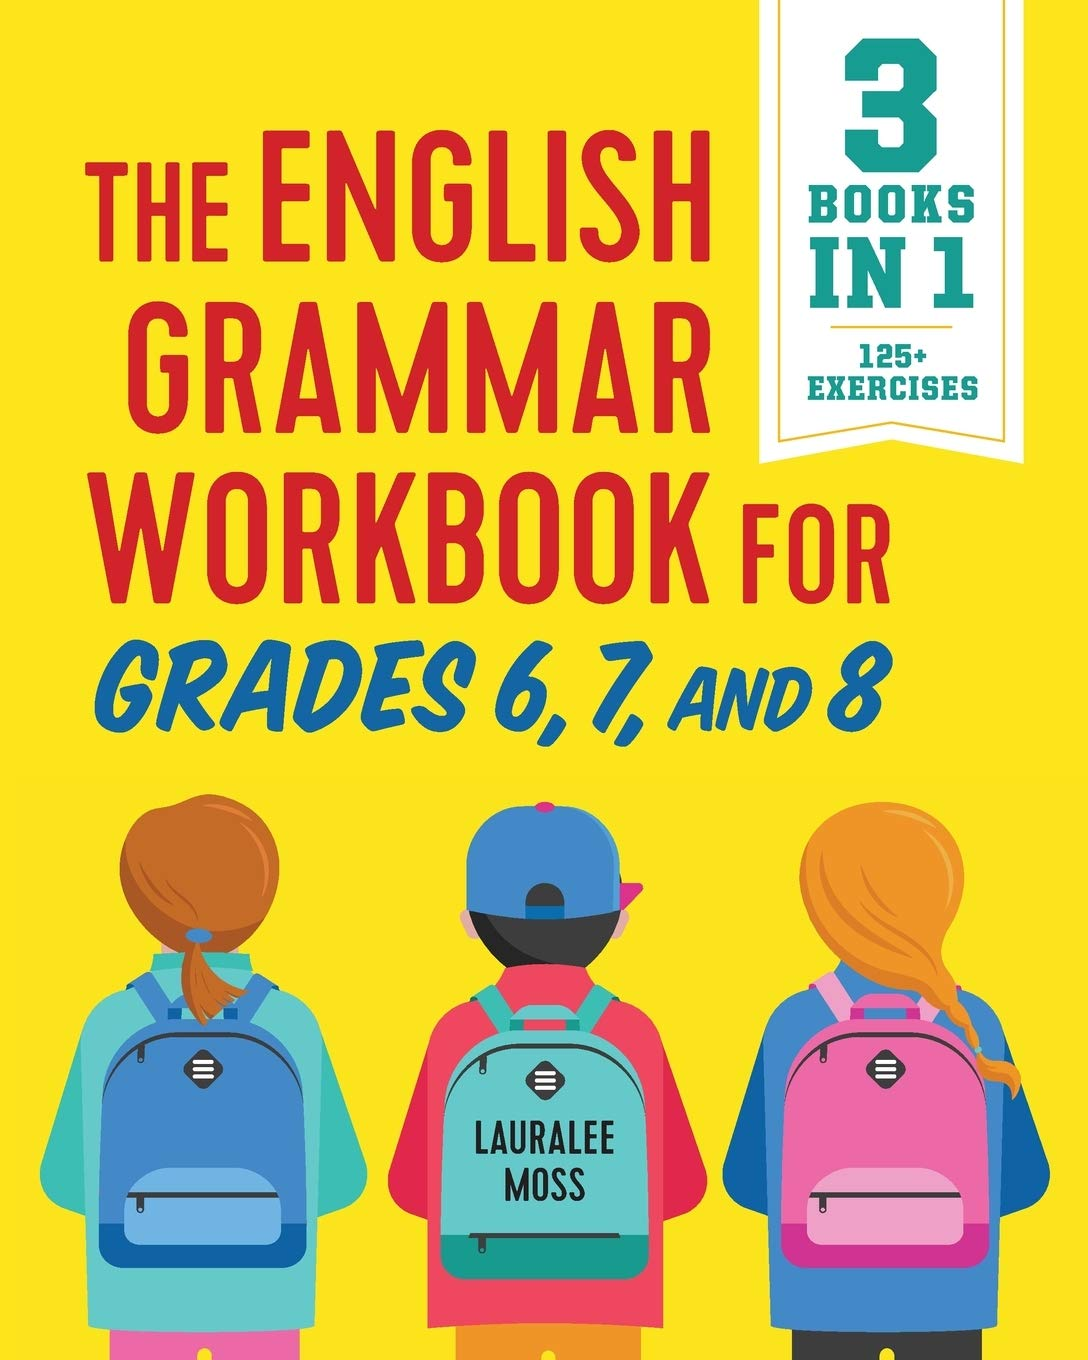 The English Grammar Workbook For Grades 6 7 And 8 125 Simple Exercises To Improve Grammar Punctuation And Word Usage Moss Lauralee 9781641520829 Amazon Com Books